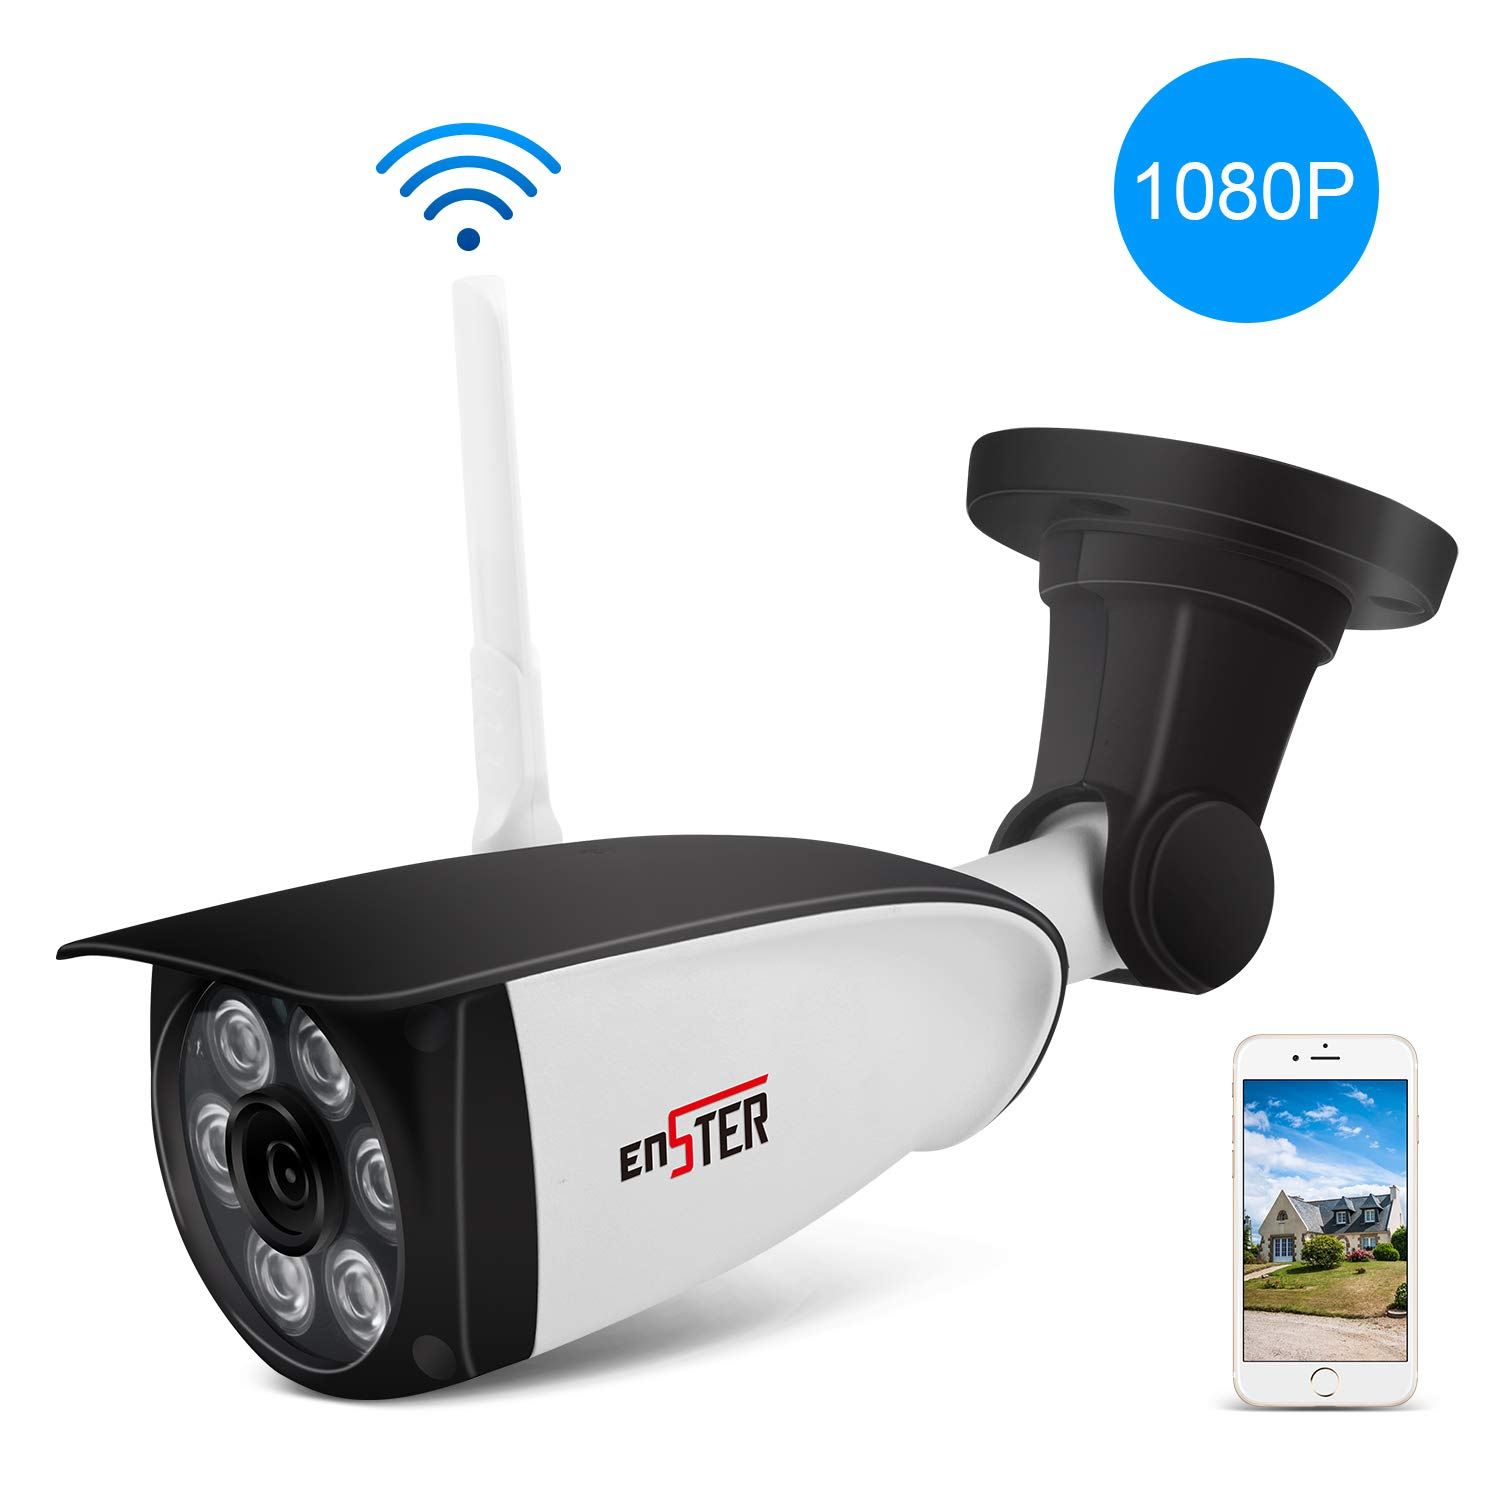 ENSTER Outdoor Security Camera - 1080P Home Outside Surveillance Camera - Motion Detection, Waterproof, Night Vision, FTP, Support Max 128GB Micro SD Card -Windows, iOS, Android Compatibility by ENSTER